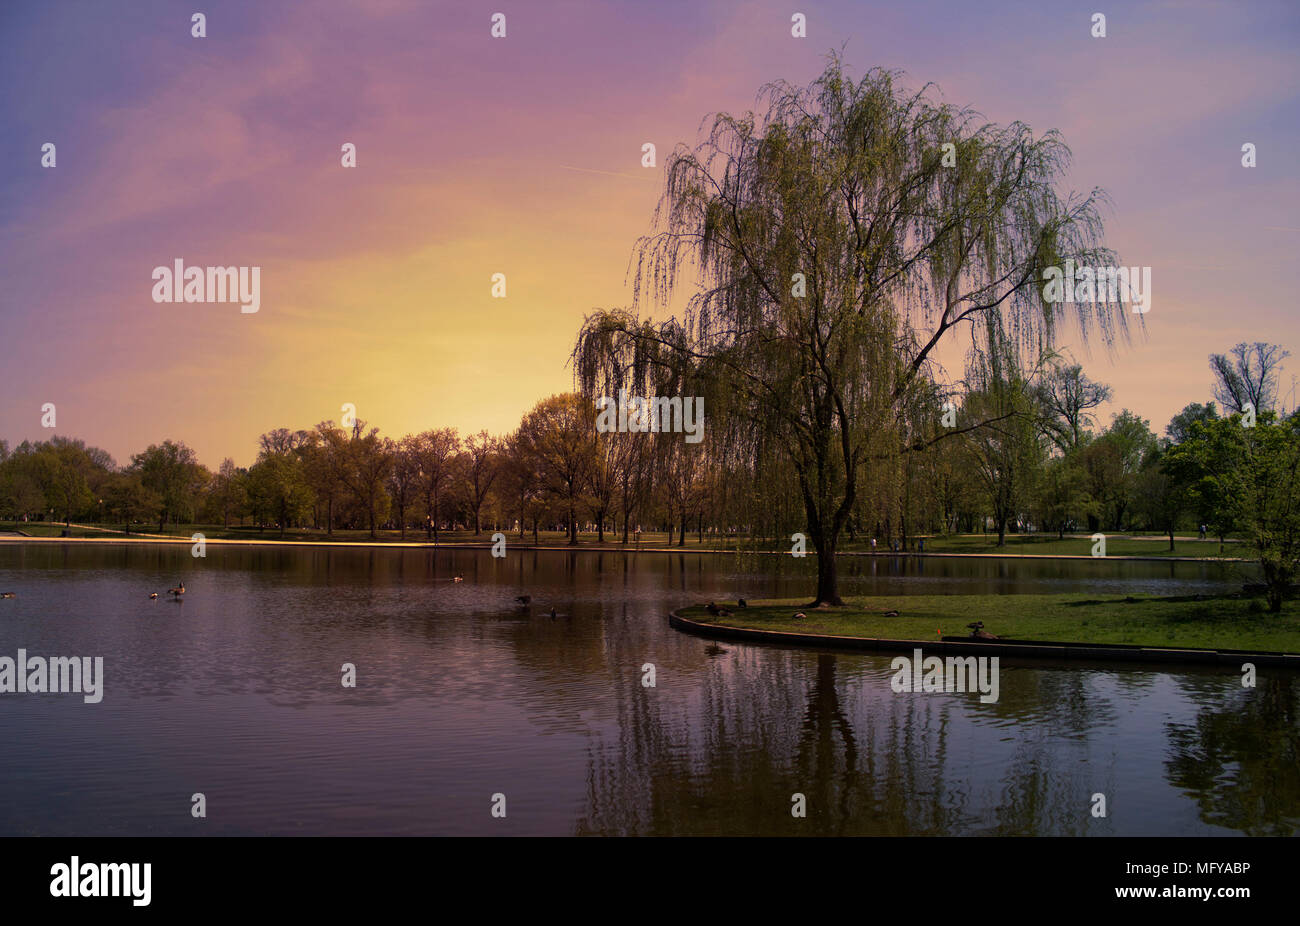 Willow Tree in Constitution Gardens, Washington DC Stock Photo ...